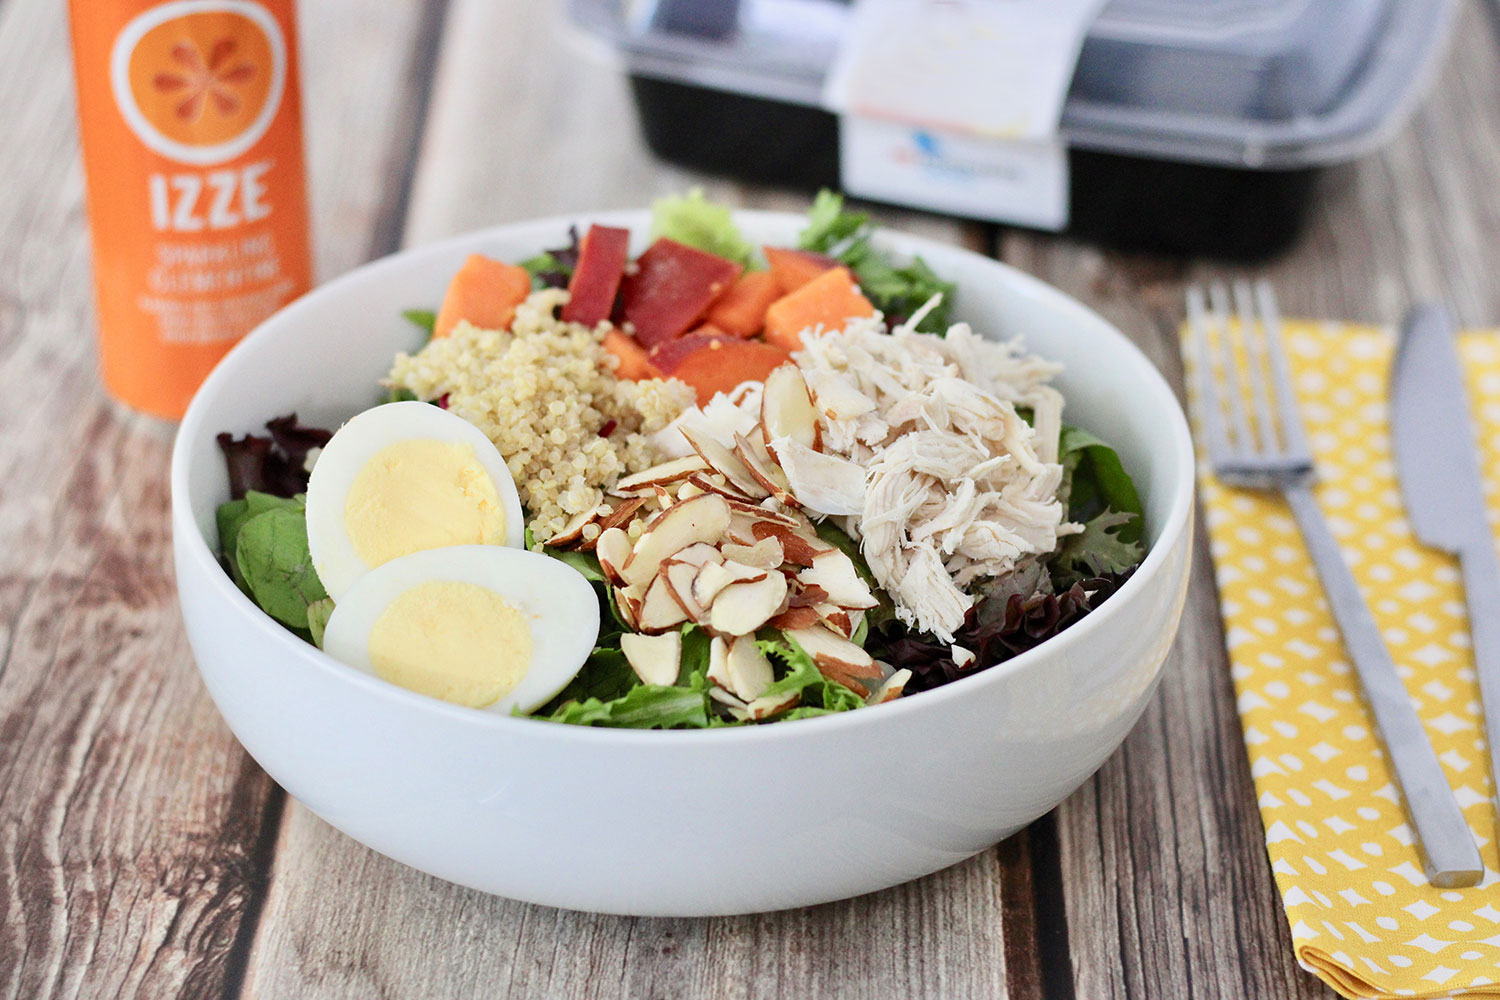 Salad Toppings